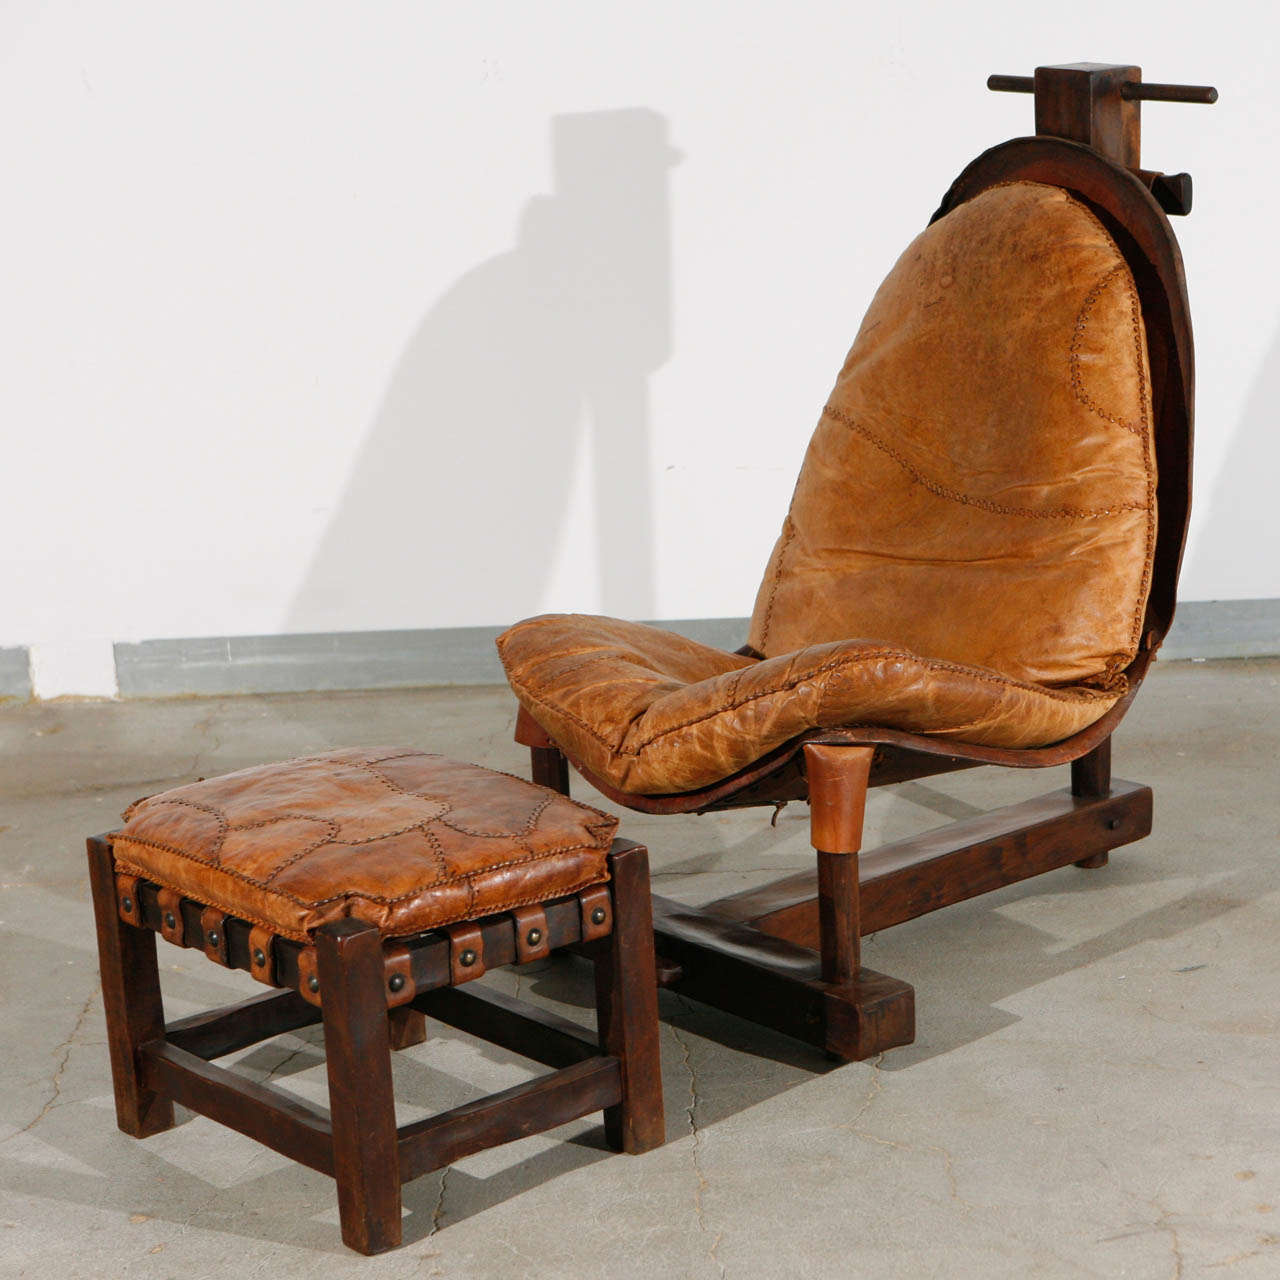 Unusual Handmade Chair and Ottoman 2